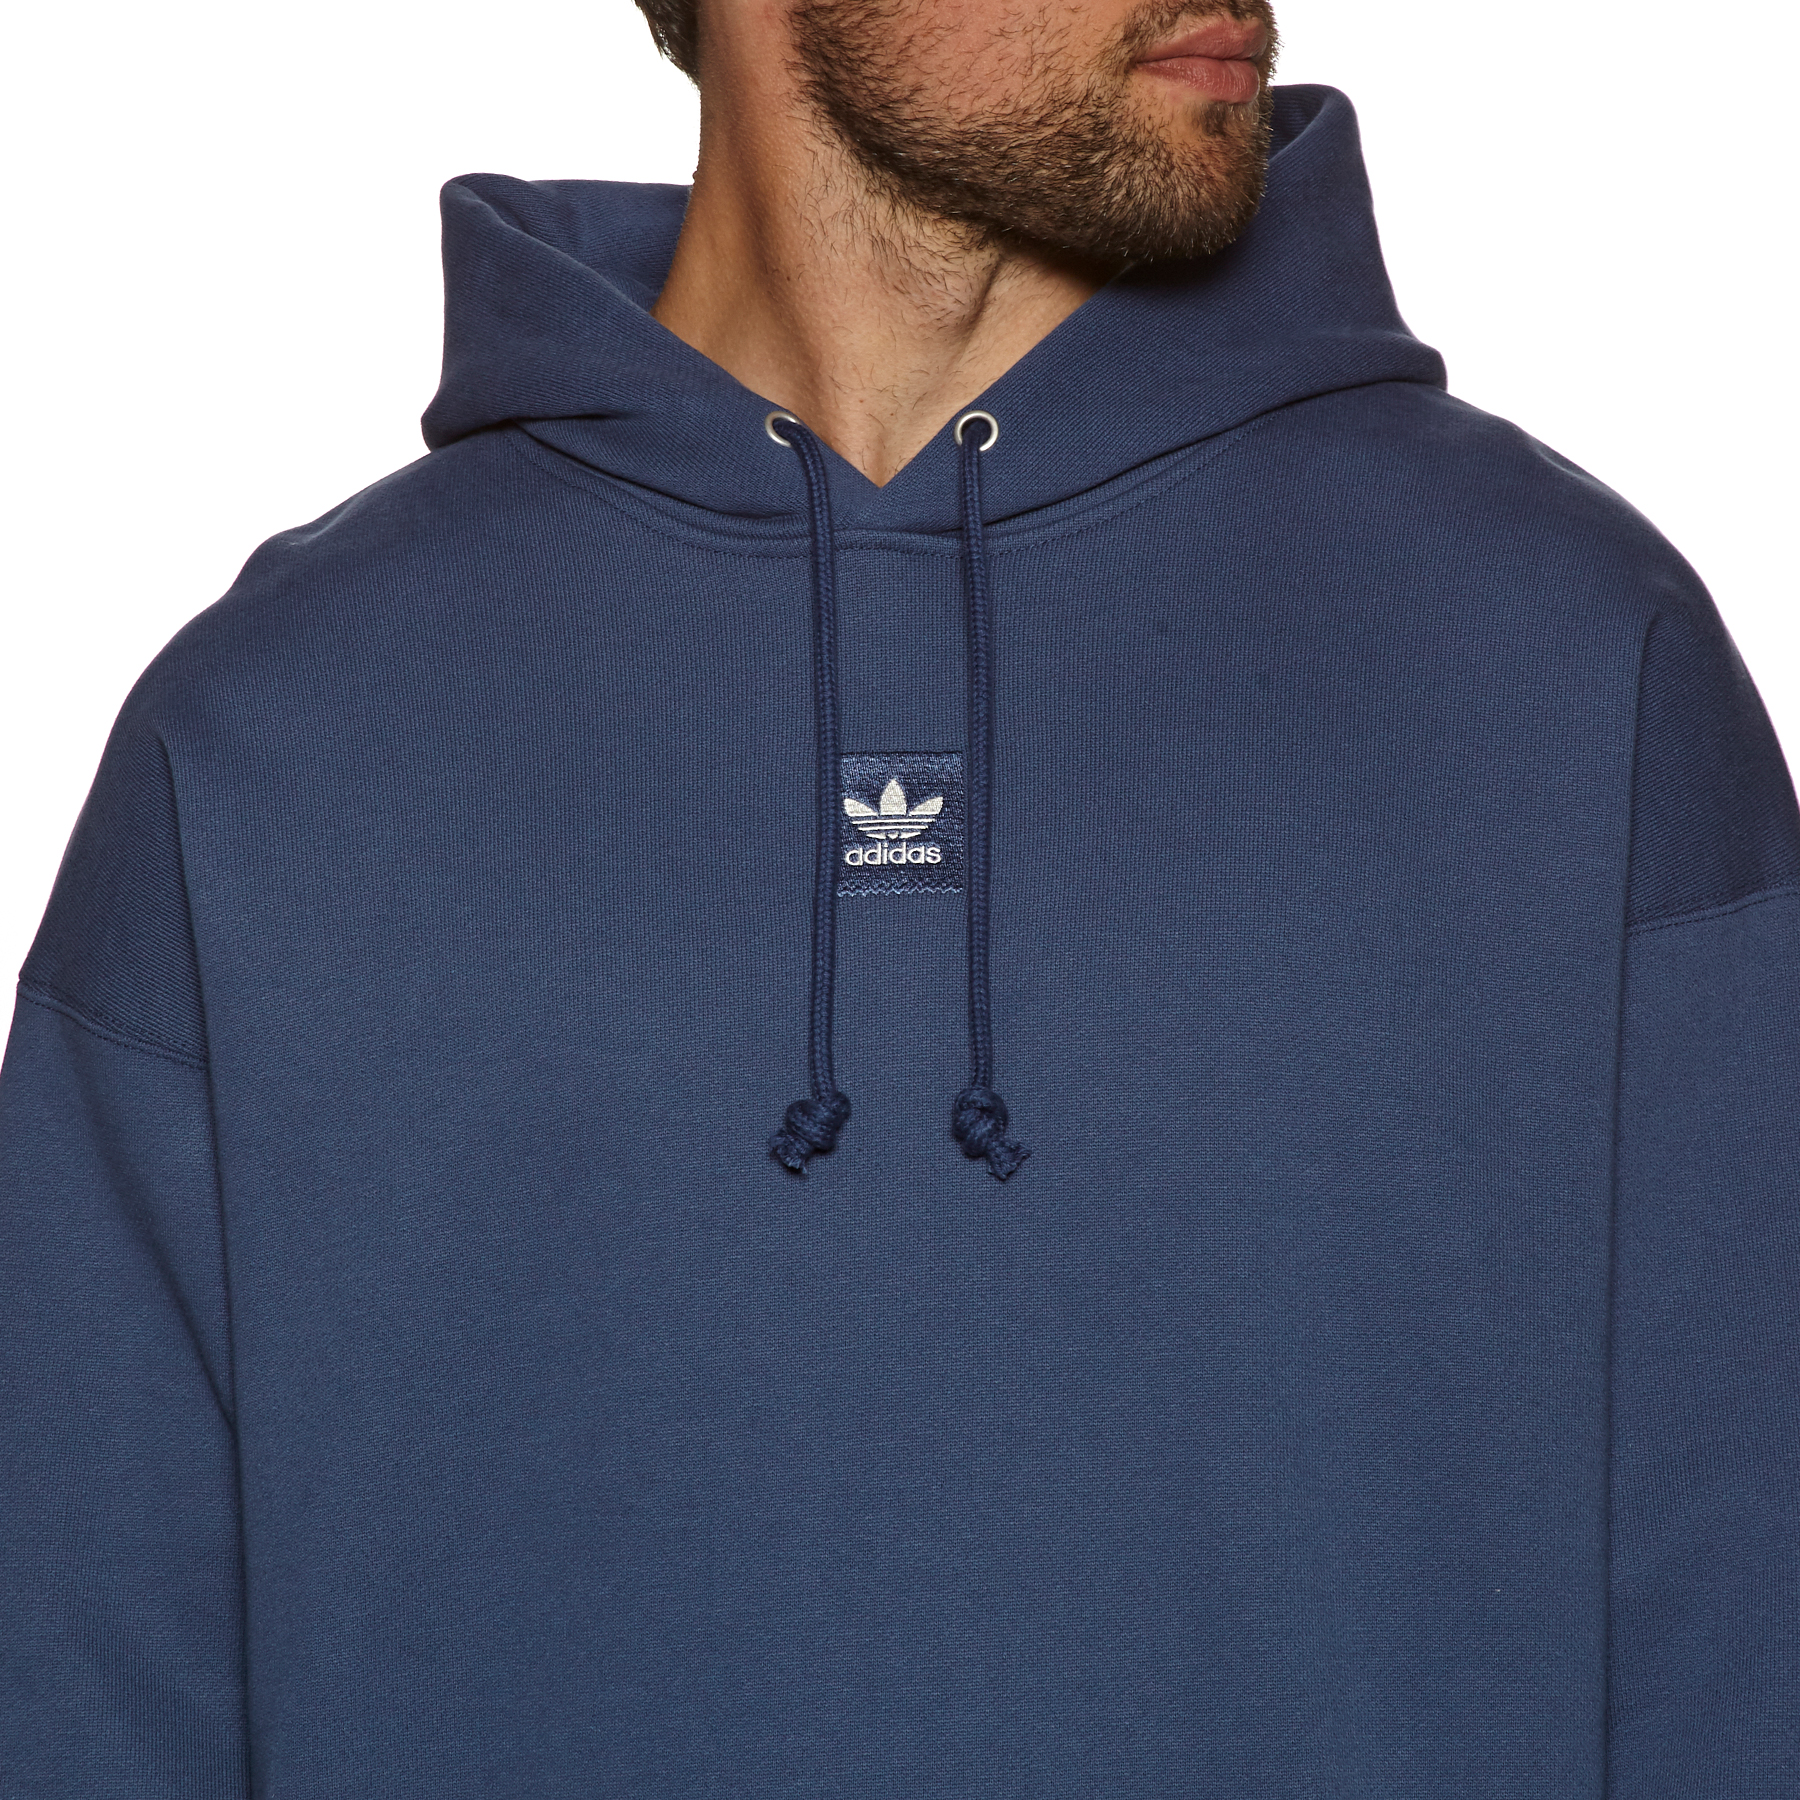 Adidas Snowboarding Team Pullover Hoody | Free Delivery Options